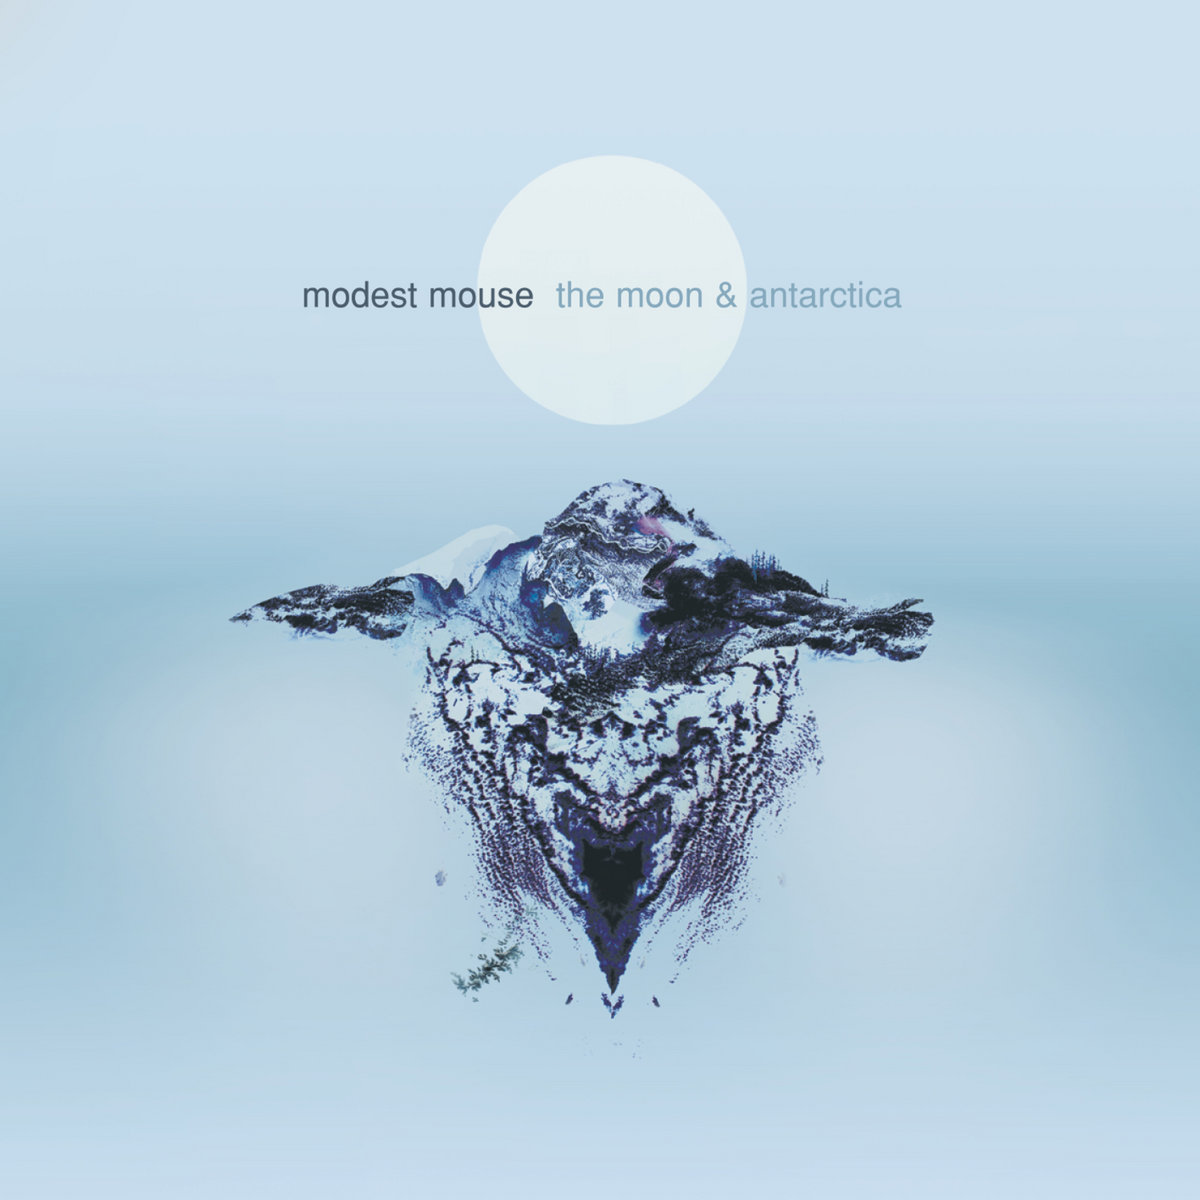 modest mouse strangers to ourselves torrent